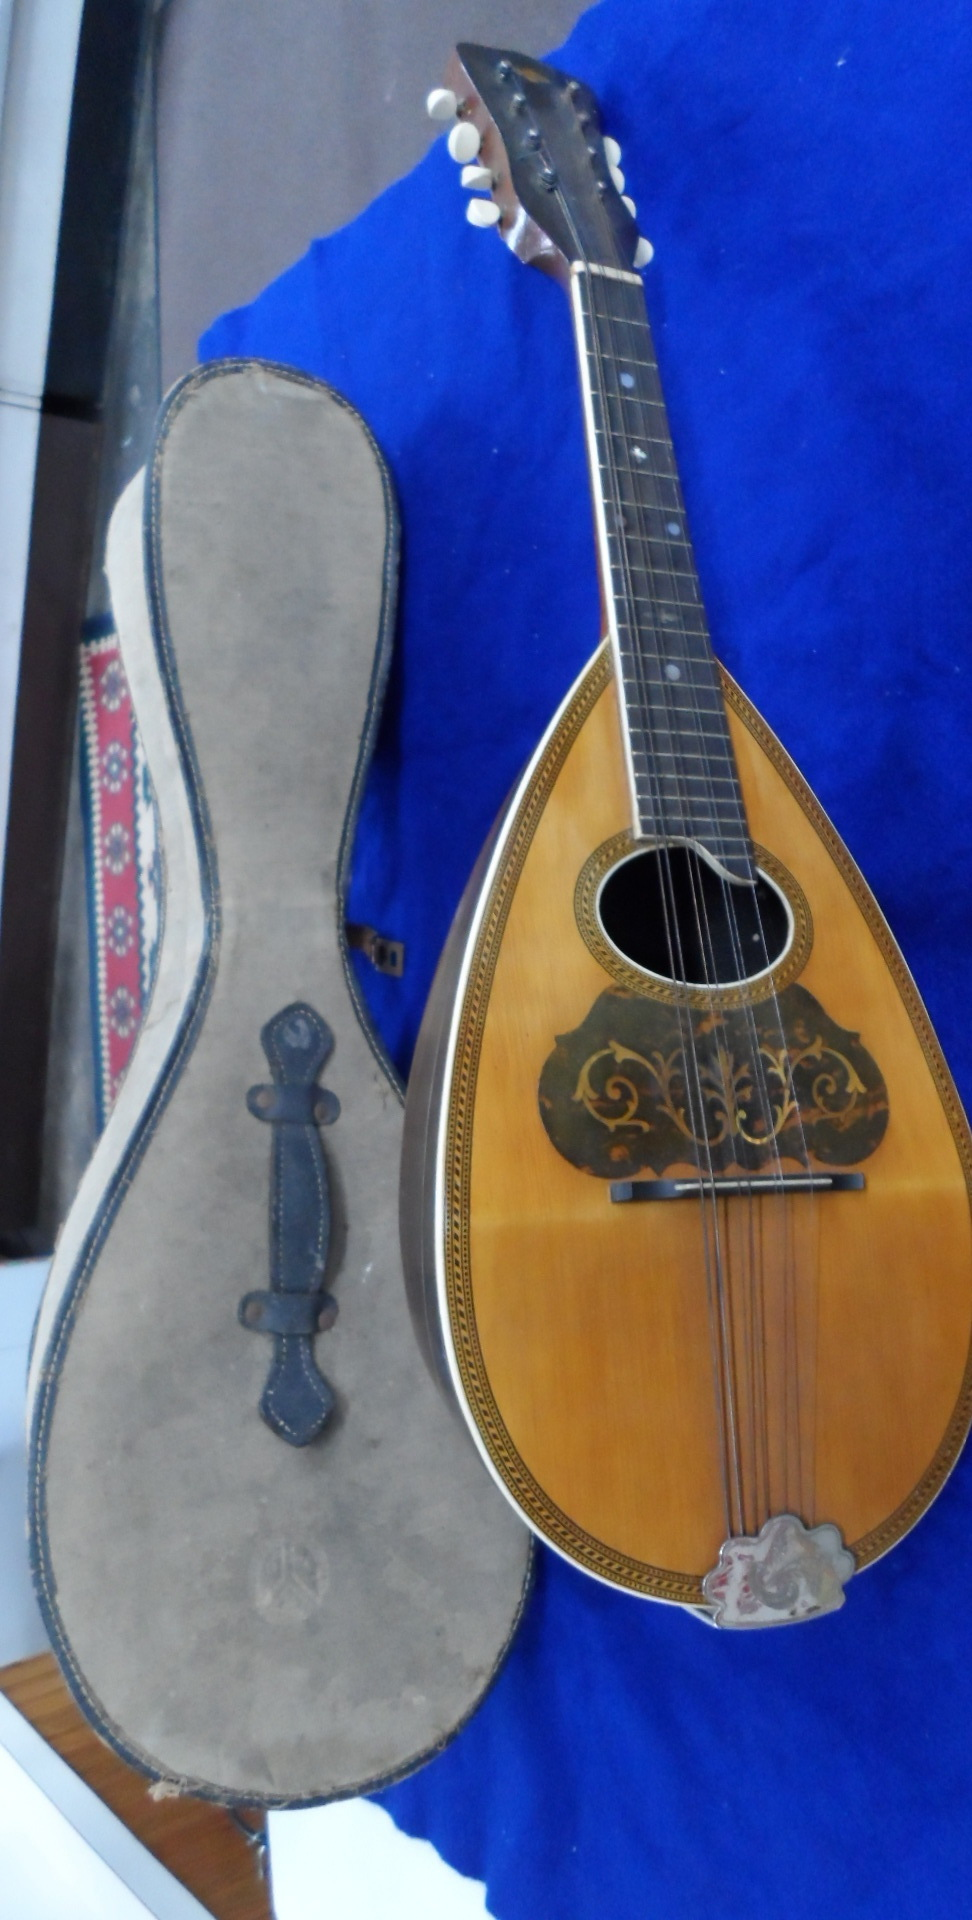 - NMN - MANDOLIN MUSICAL INSTRUMENTS